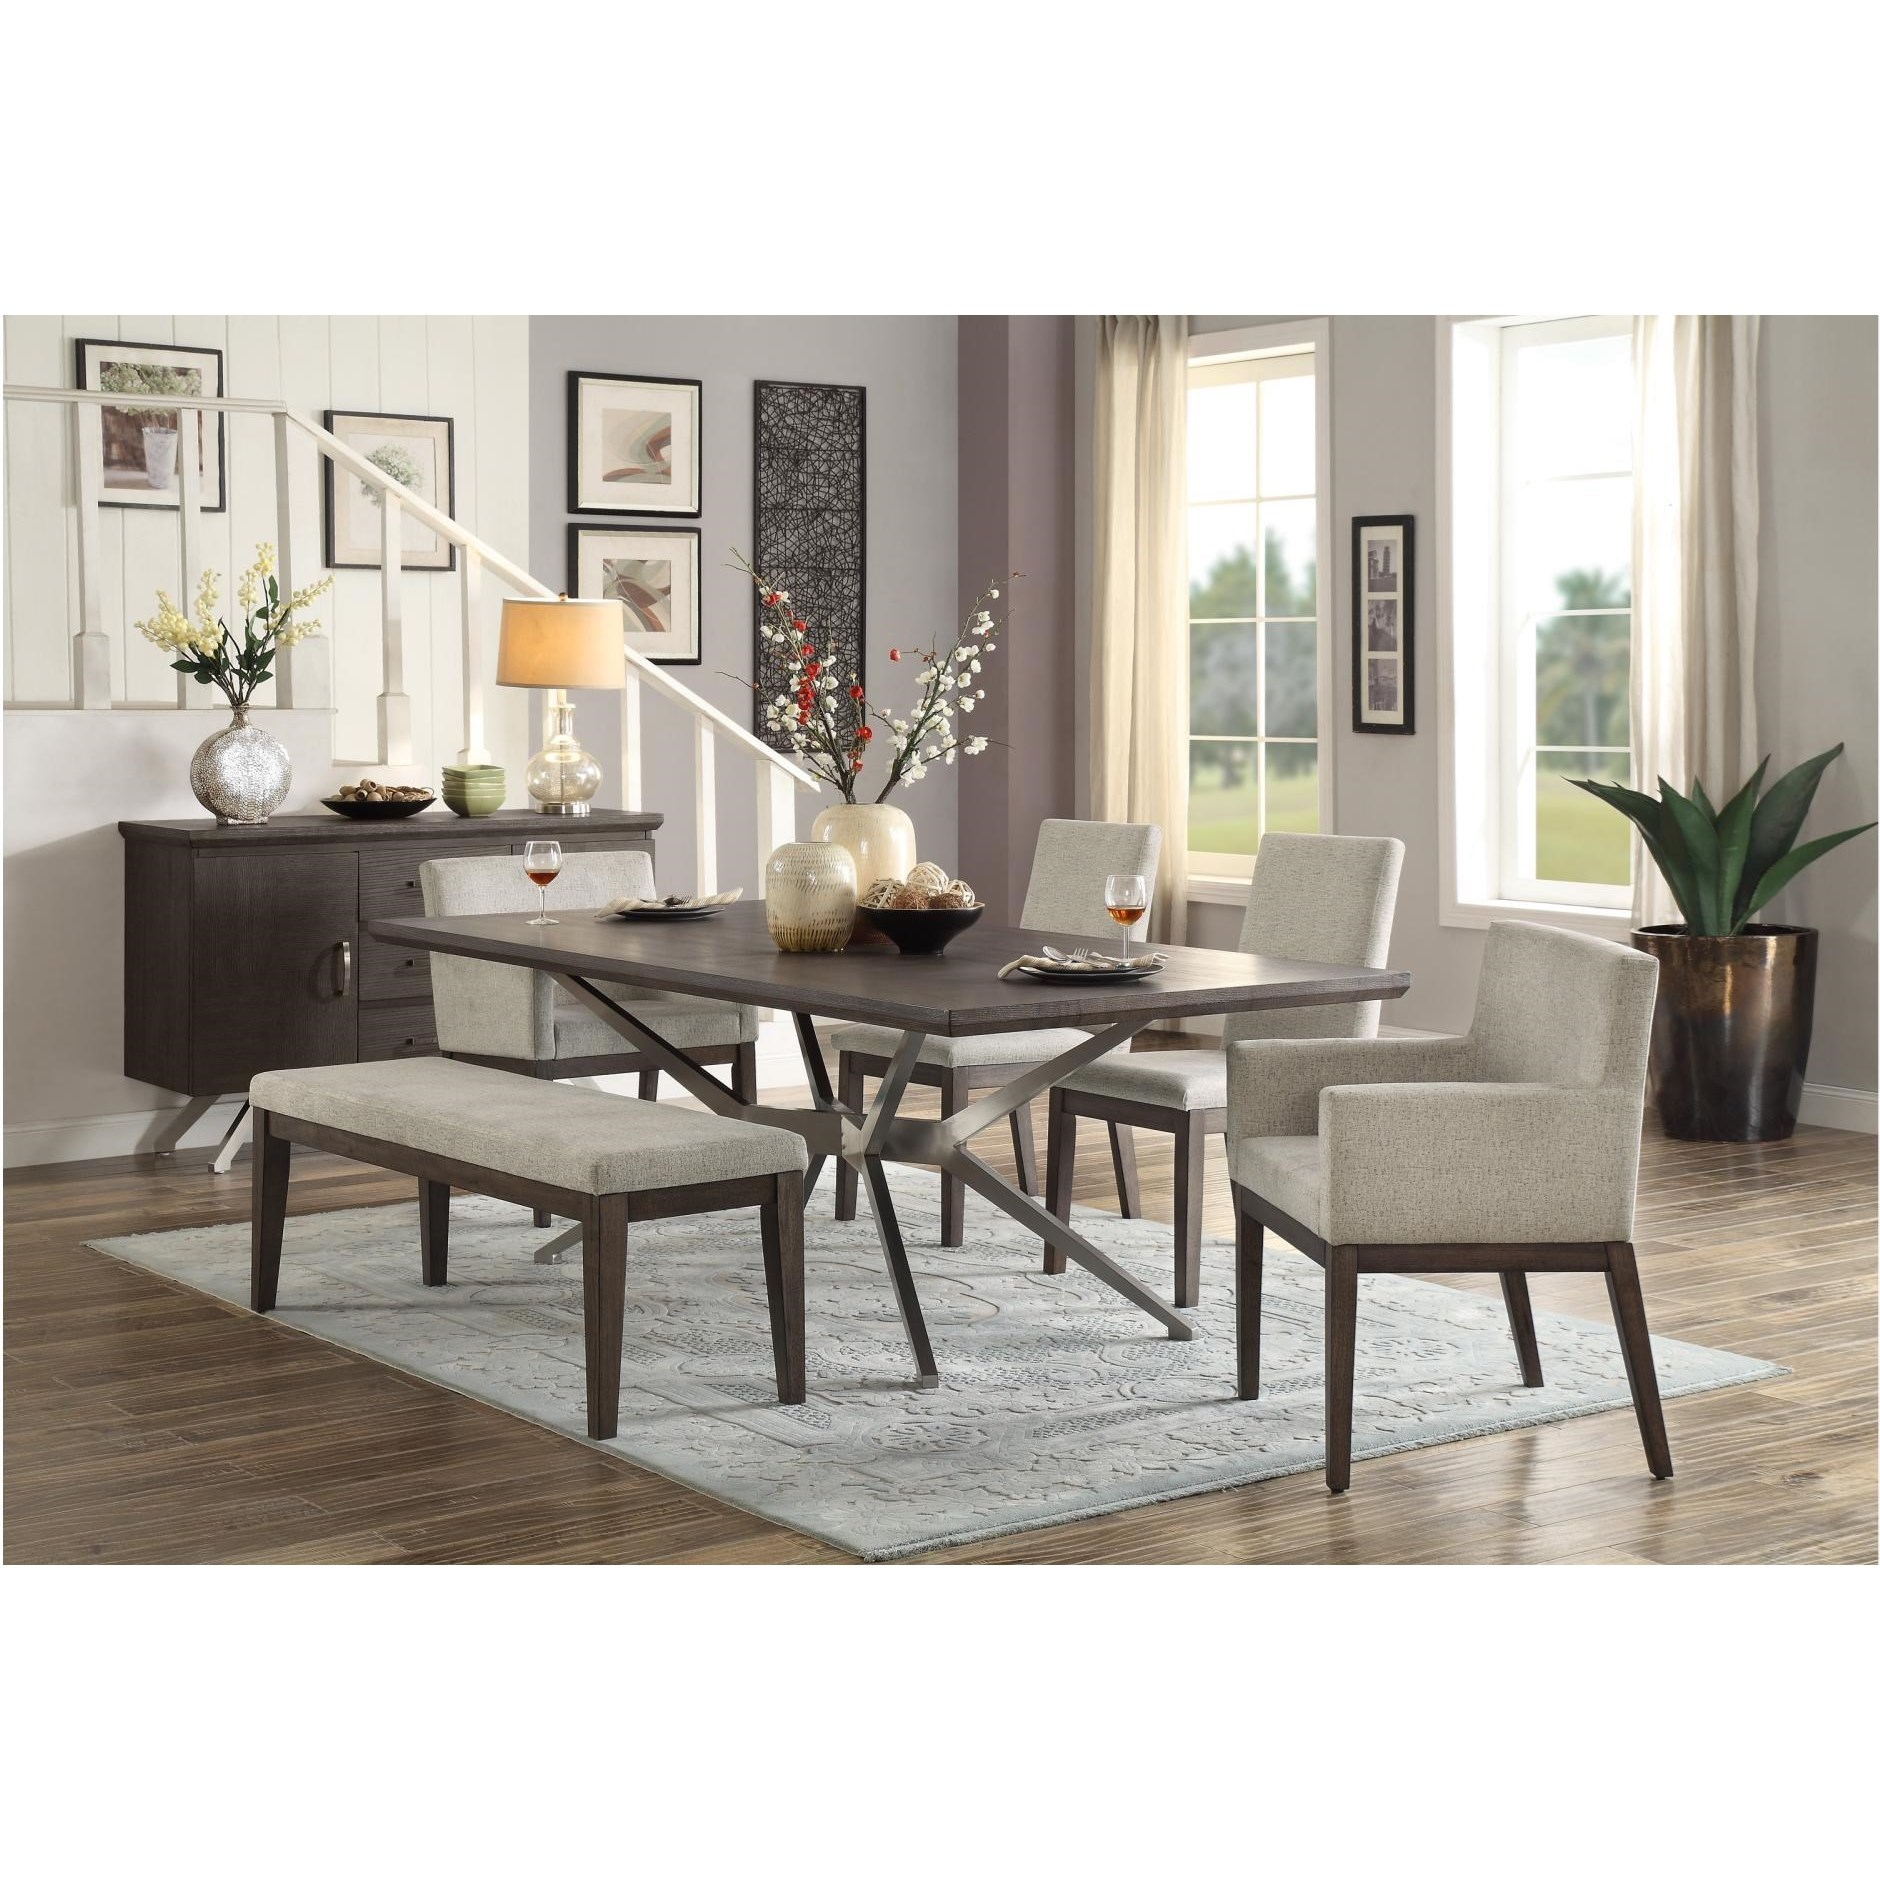 Contemporary 6 Piece Dining Room Table Set With Bench By: Homelegance Ibiza Mid-Century Modern 6 Piece Dining Set